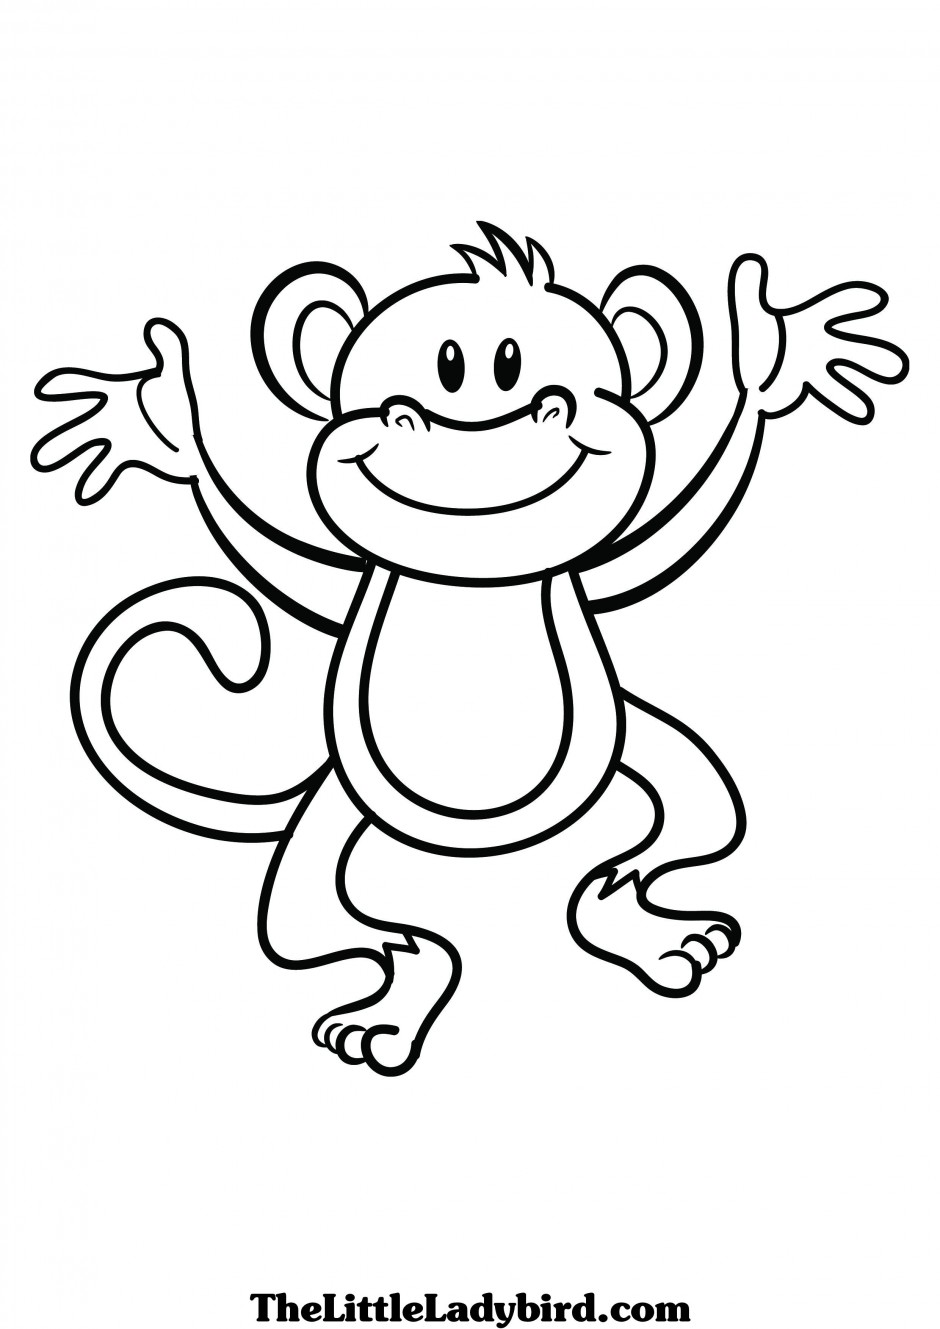 Swinging Monkey Drawing at GetDrawings.com | Free for personal use ...